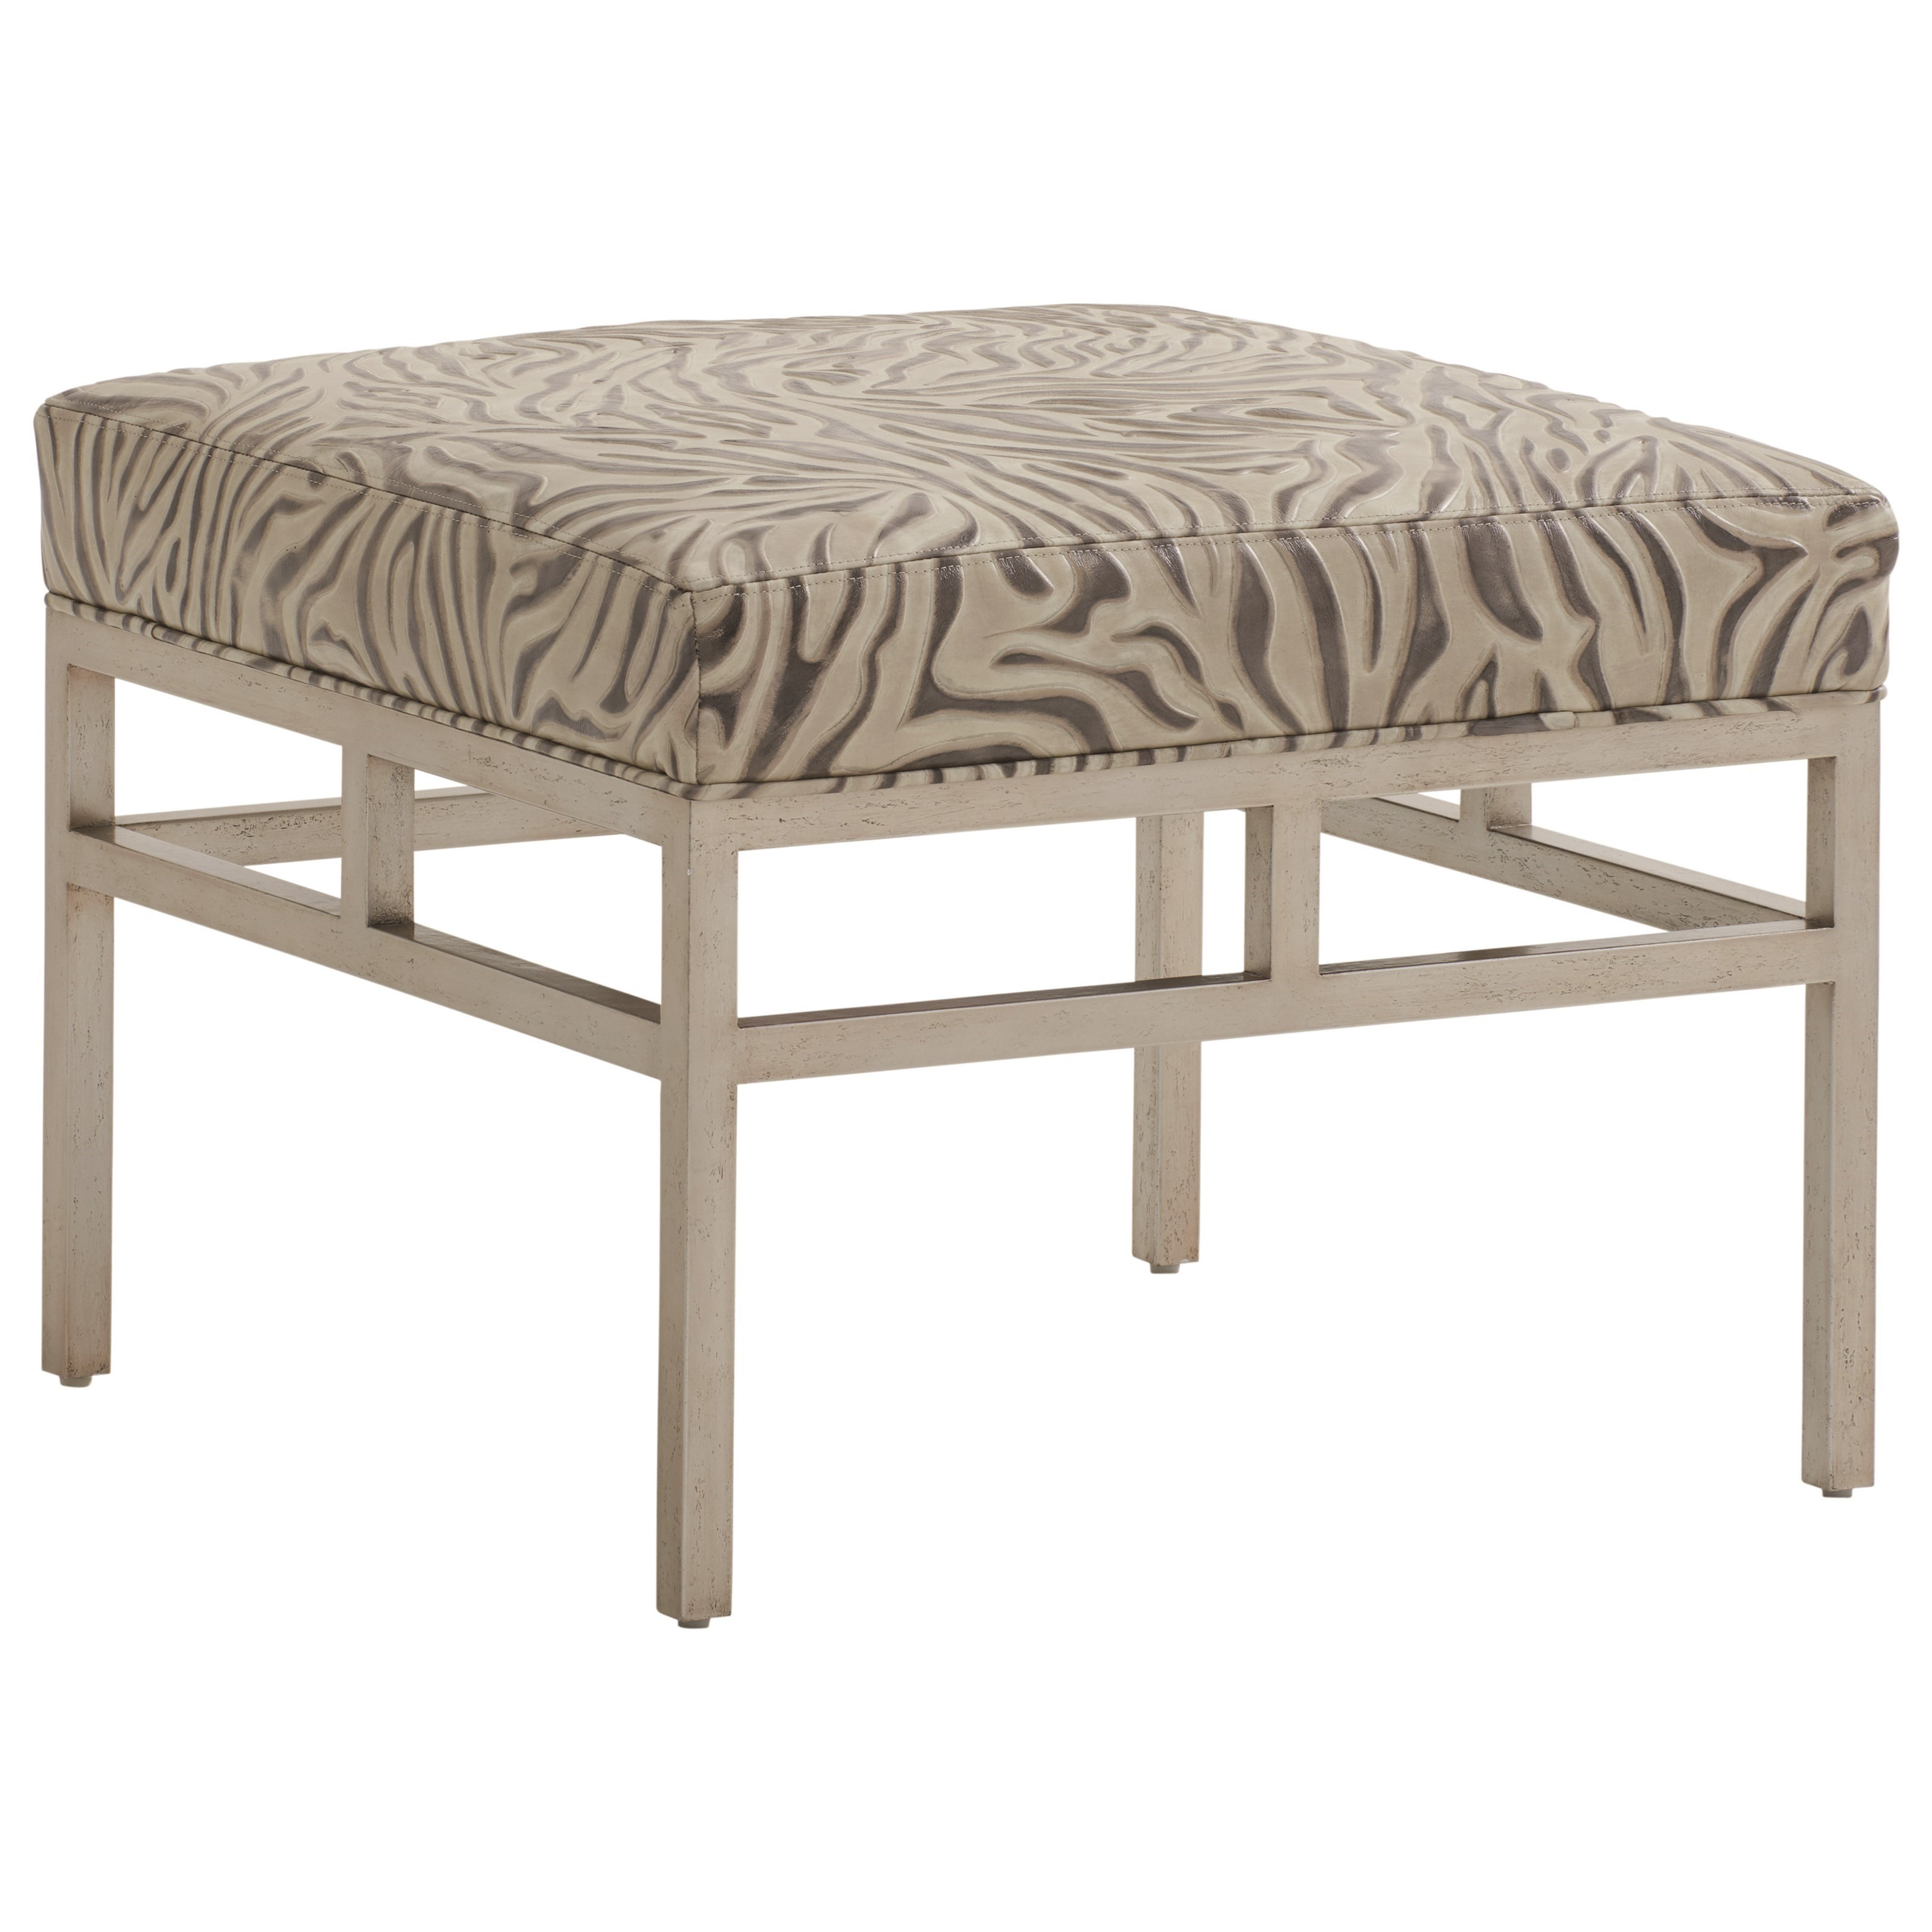 Barclay Butera Upholstery Lucca Metal Ottoman by Barclay Butera at Baer's Furniture